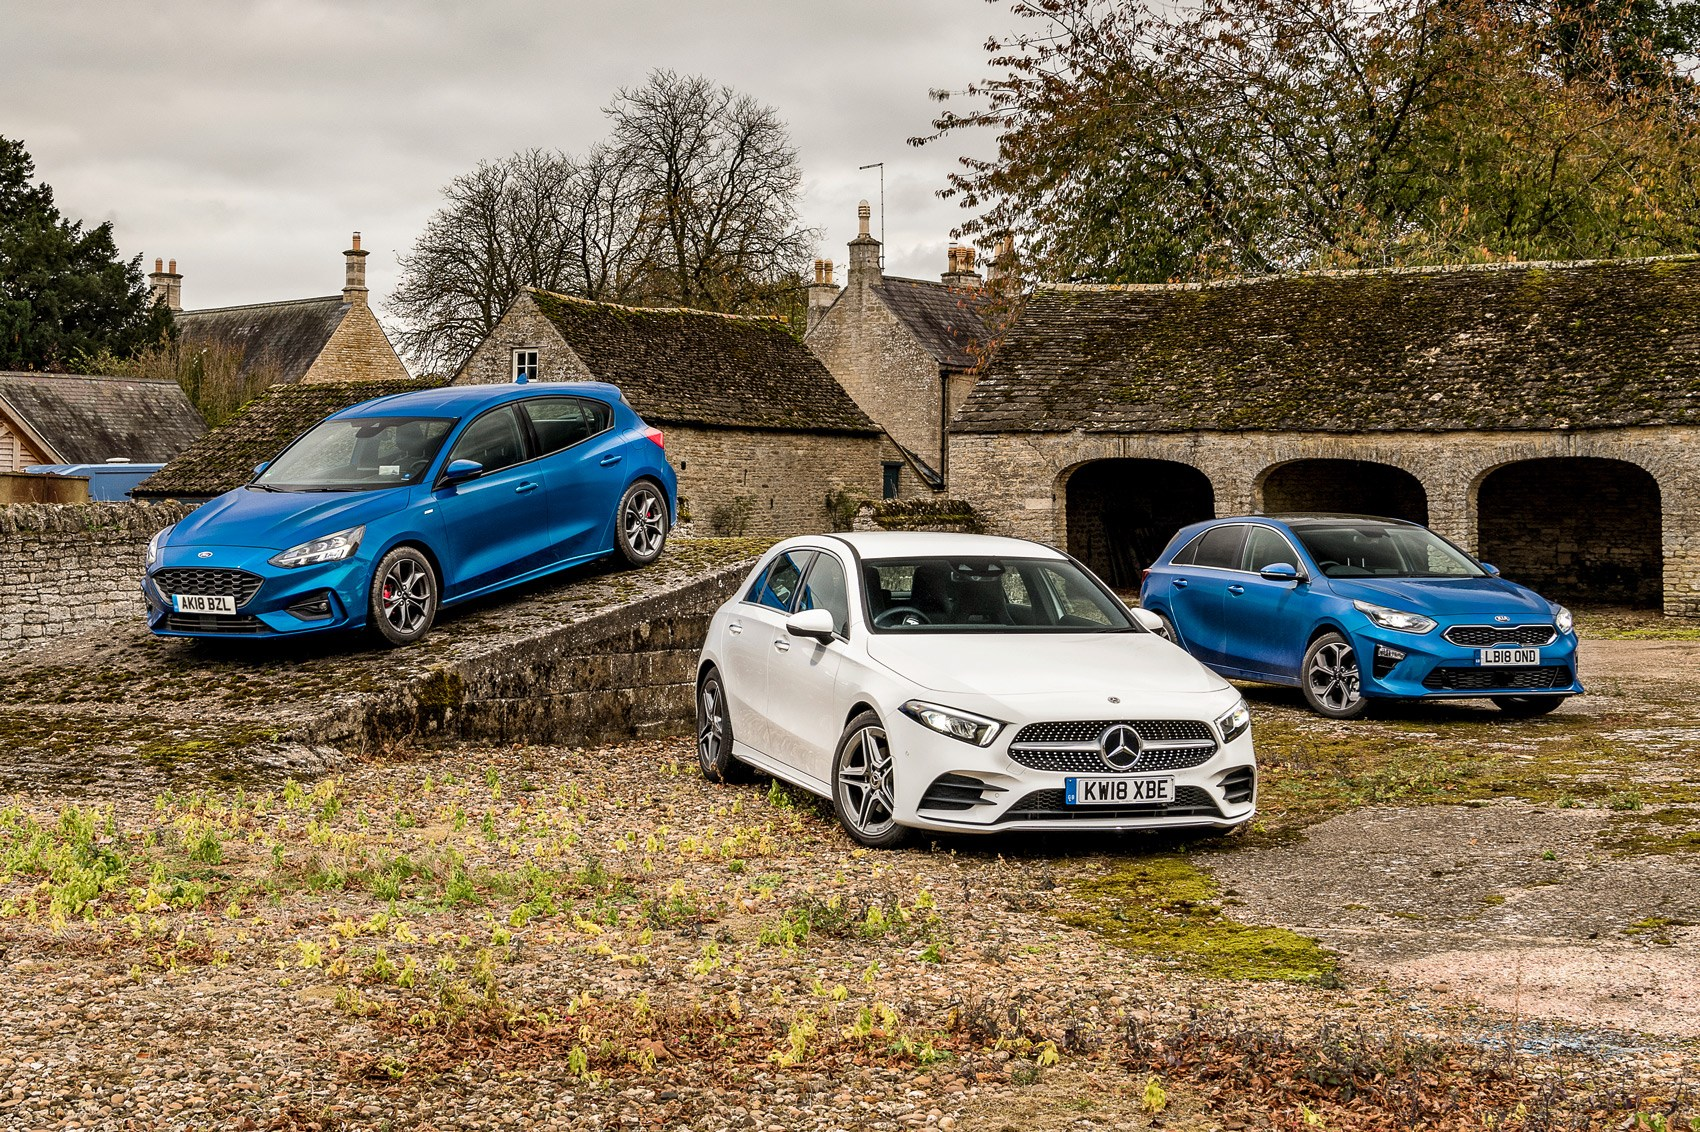 Best hatchbacks 2019: Mercedes A-Class vs Ford Focus vs Kia